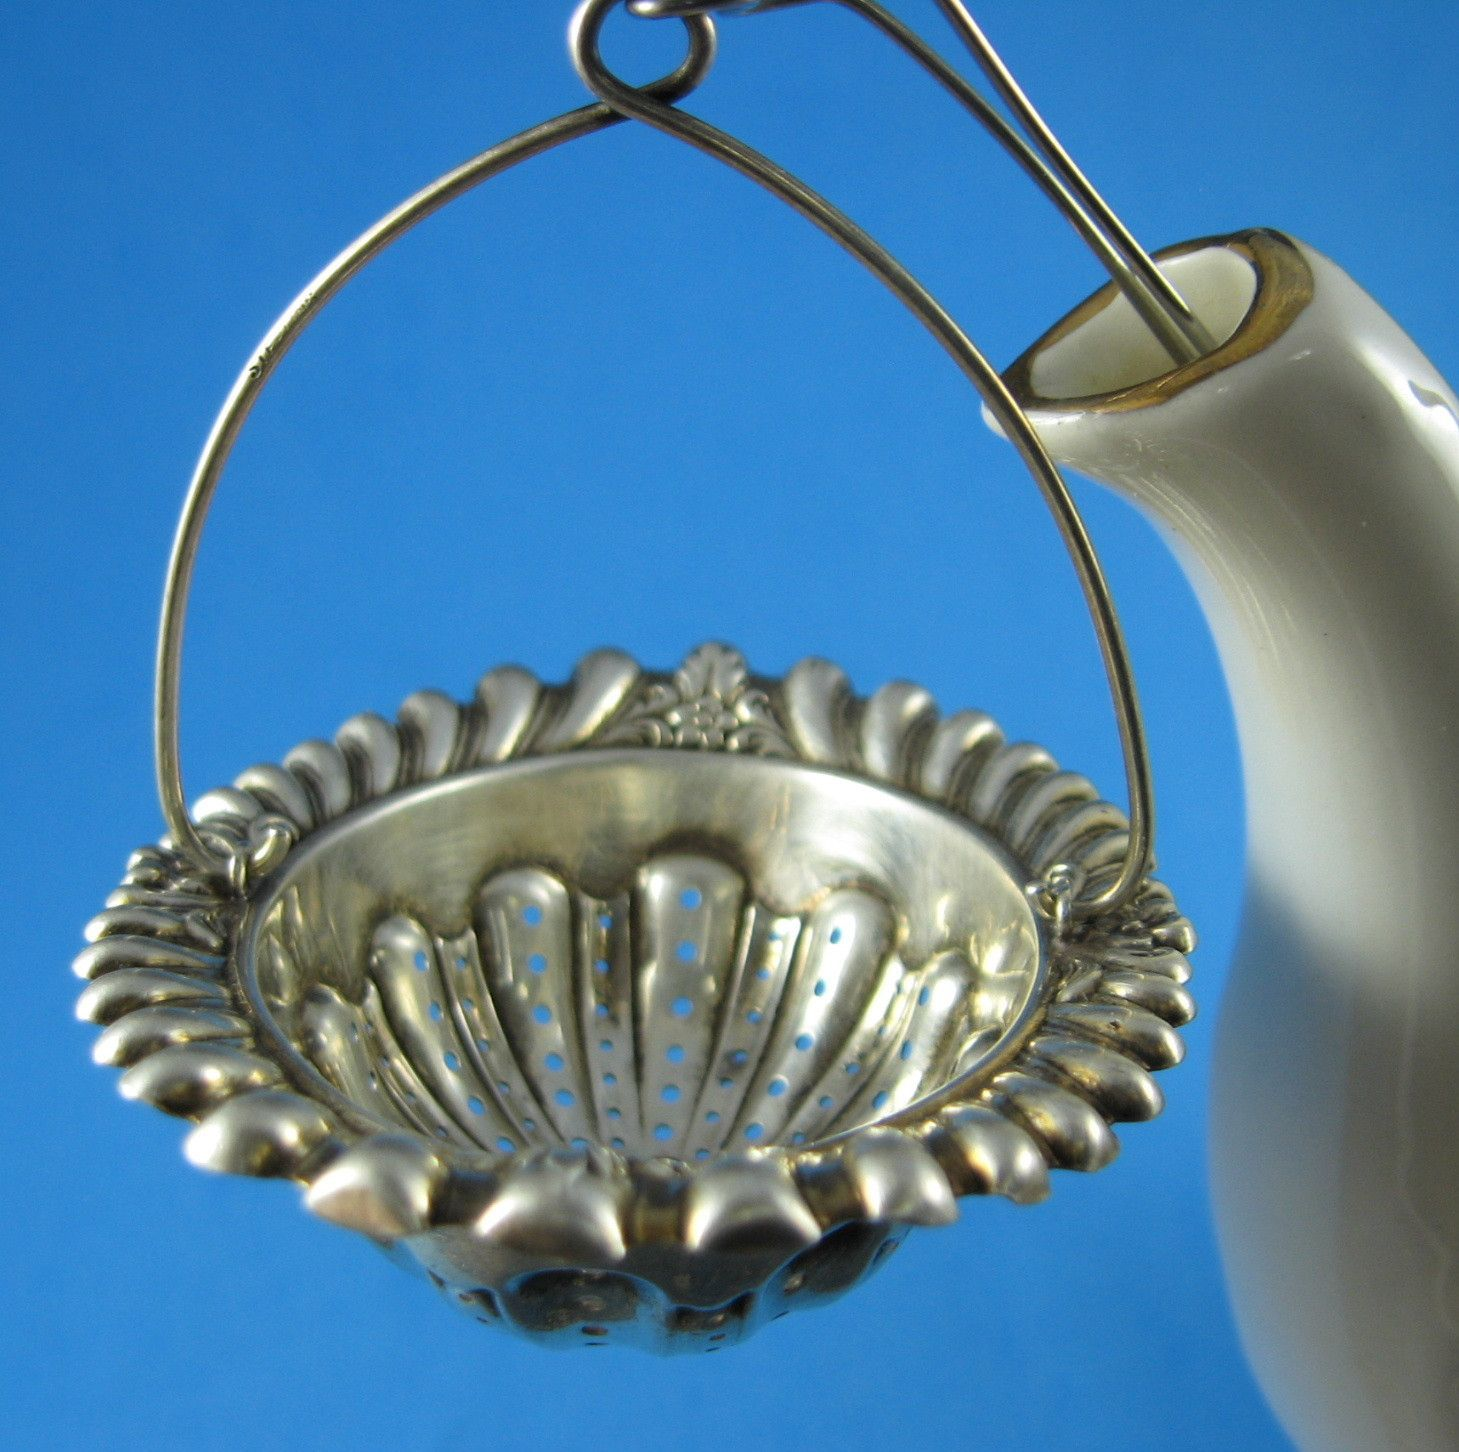 27++ Teapot with strainer in spout ideas